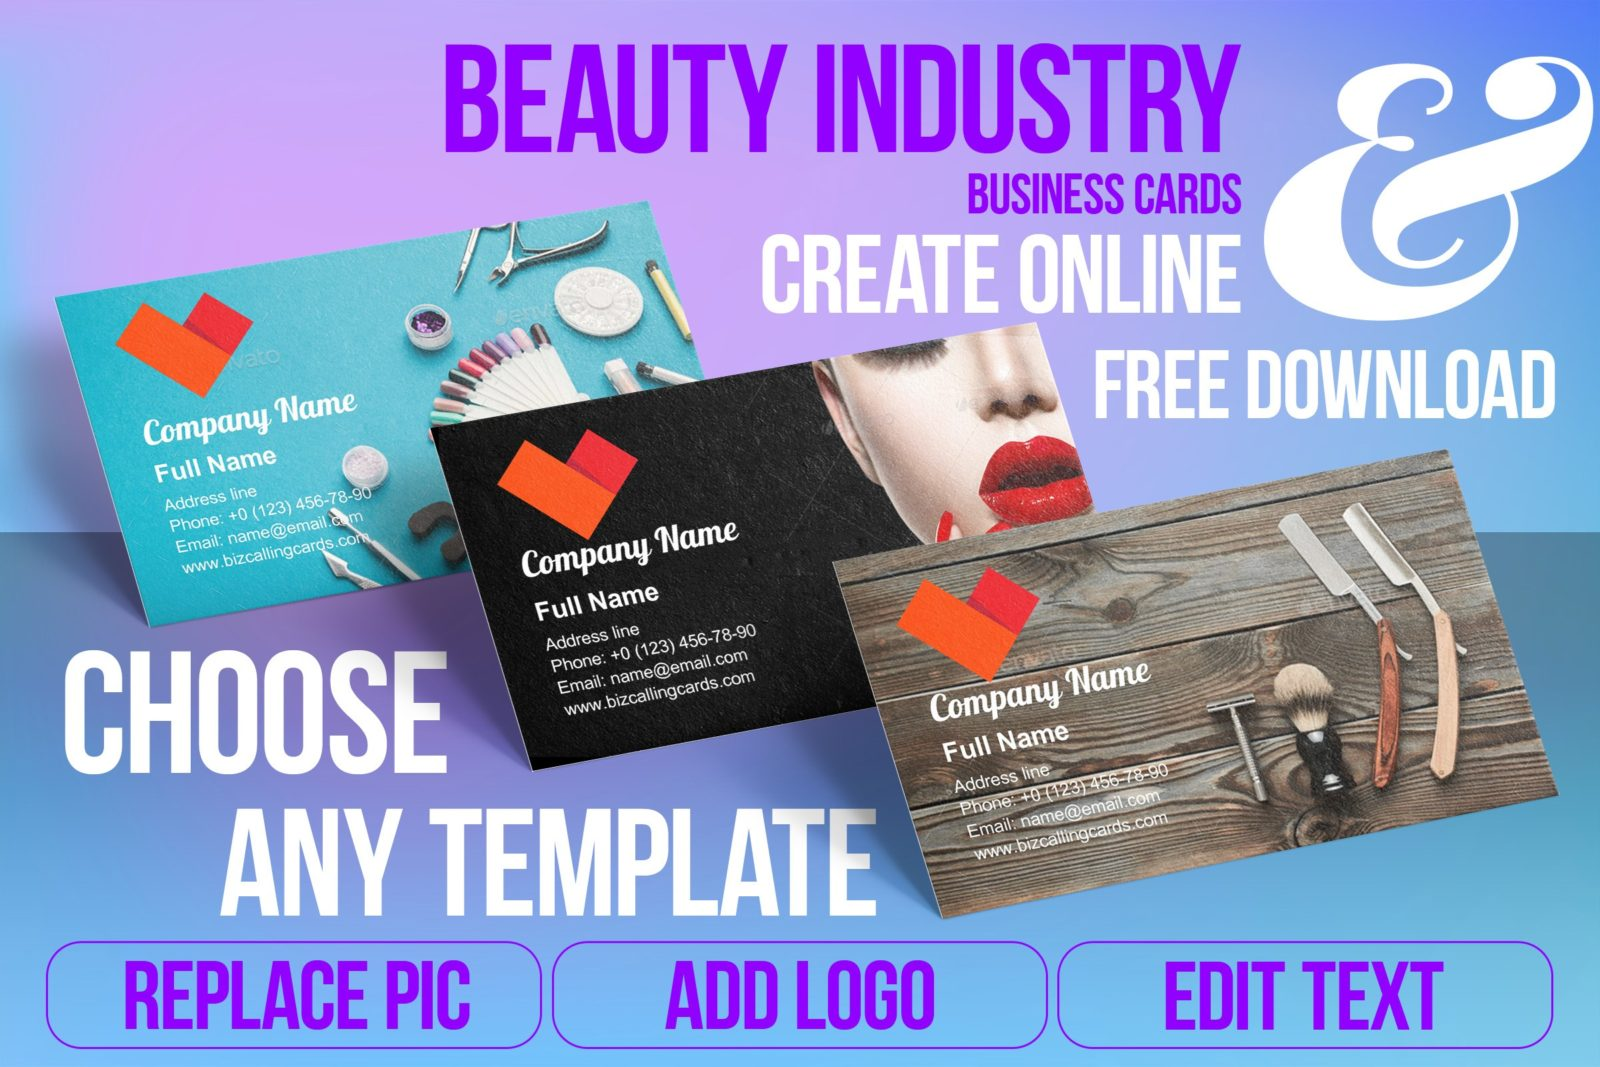 Business Card Templates For Beauty Industry Free Download